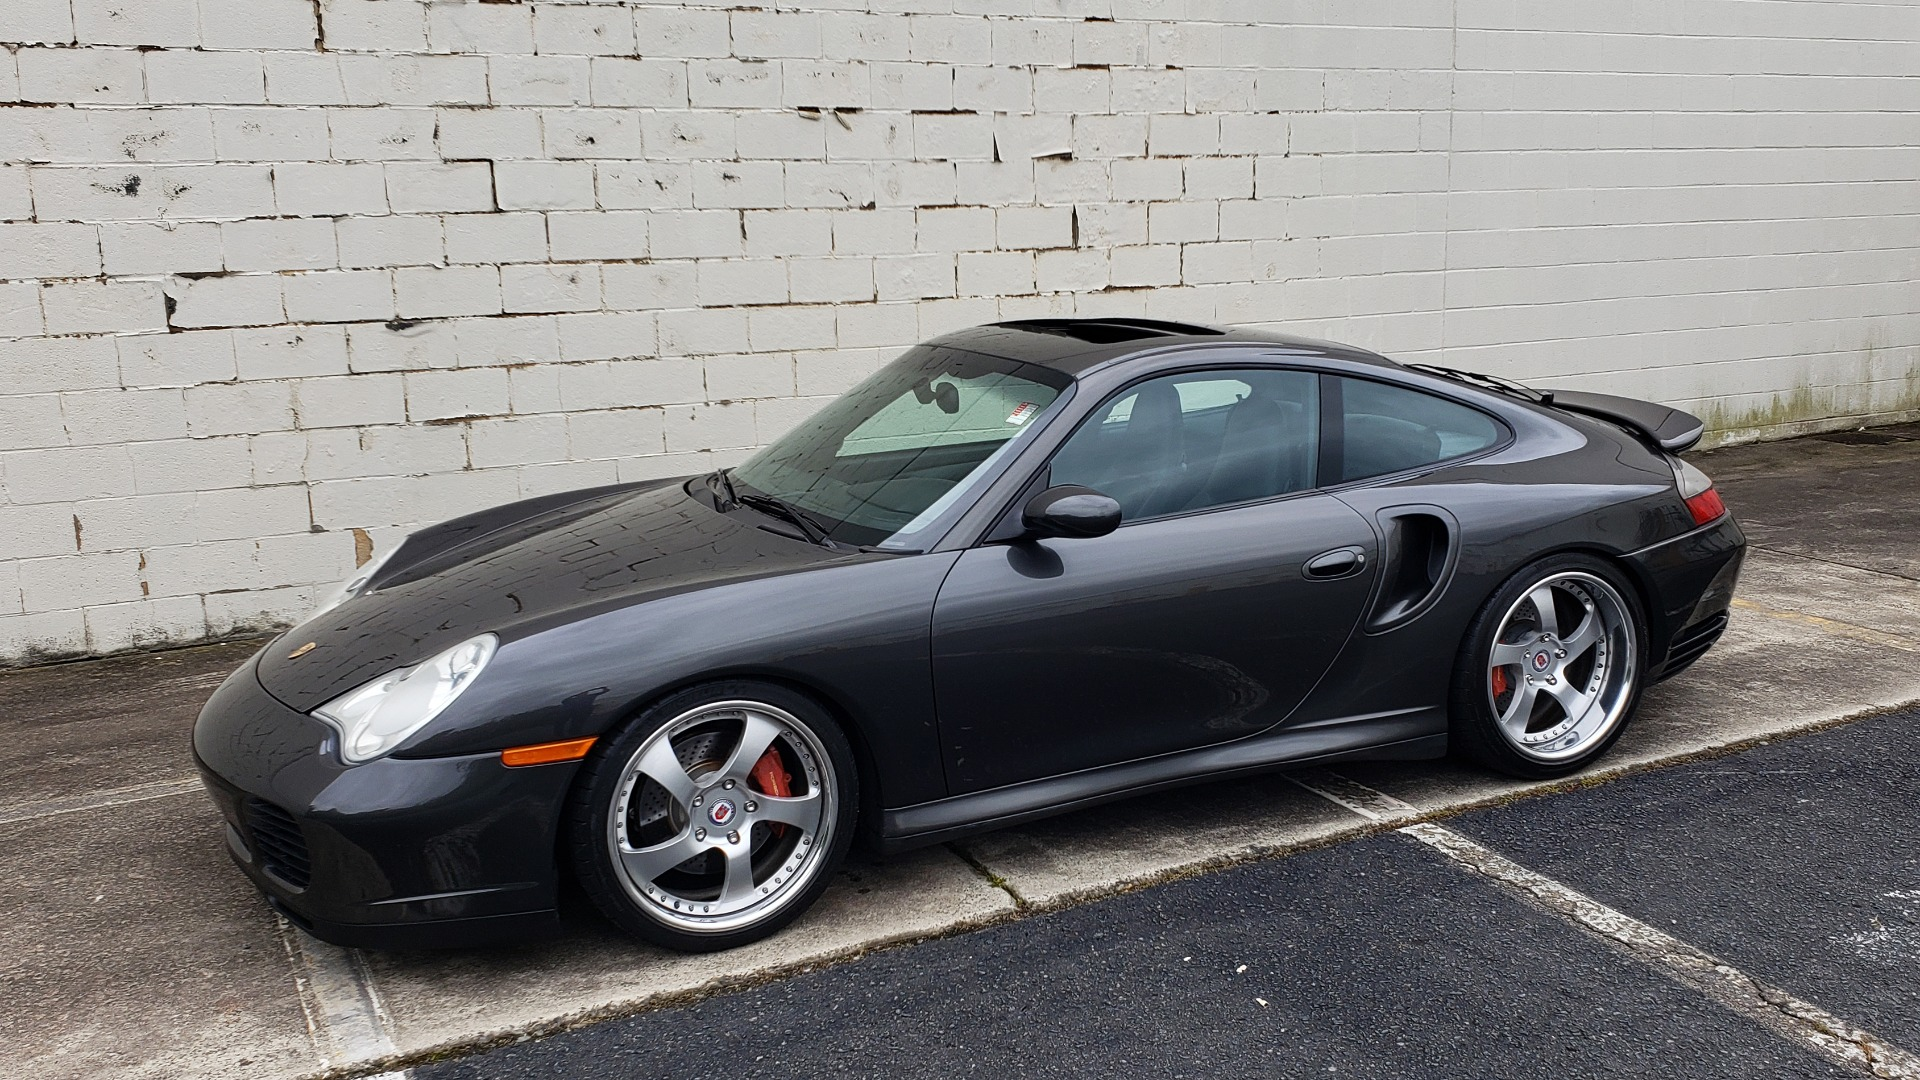 Used 2002 Porsche 911 CARRERA TURBO / 6-SPD MAN / ALPINE / BOSE / PERF UPGRADES for sale $53,995 at Formula Imports in Charlotte NC 28227 80